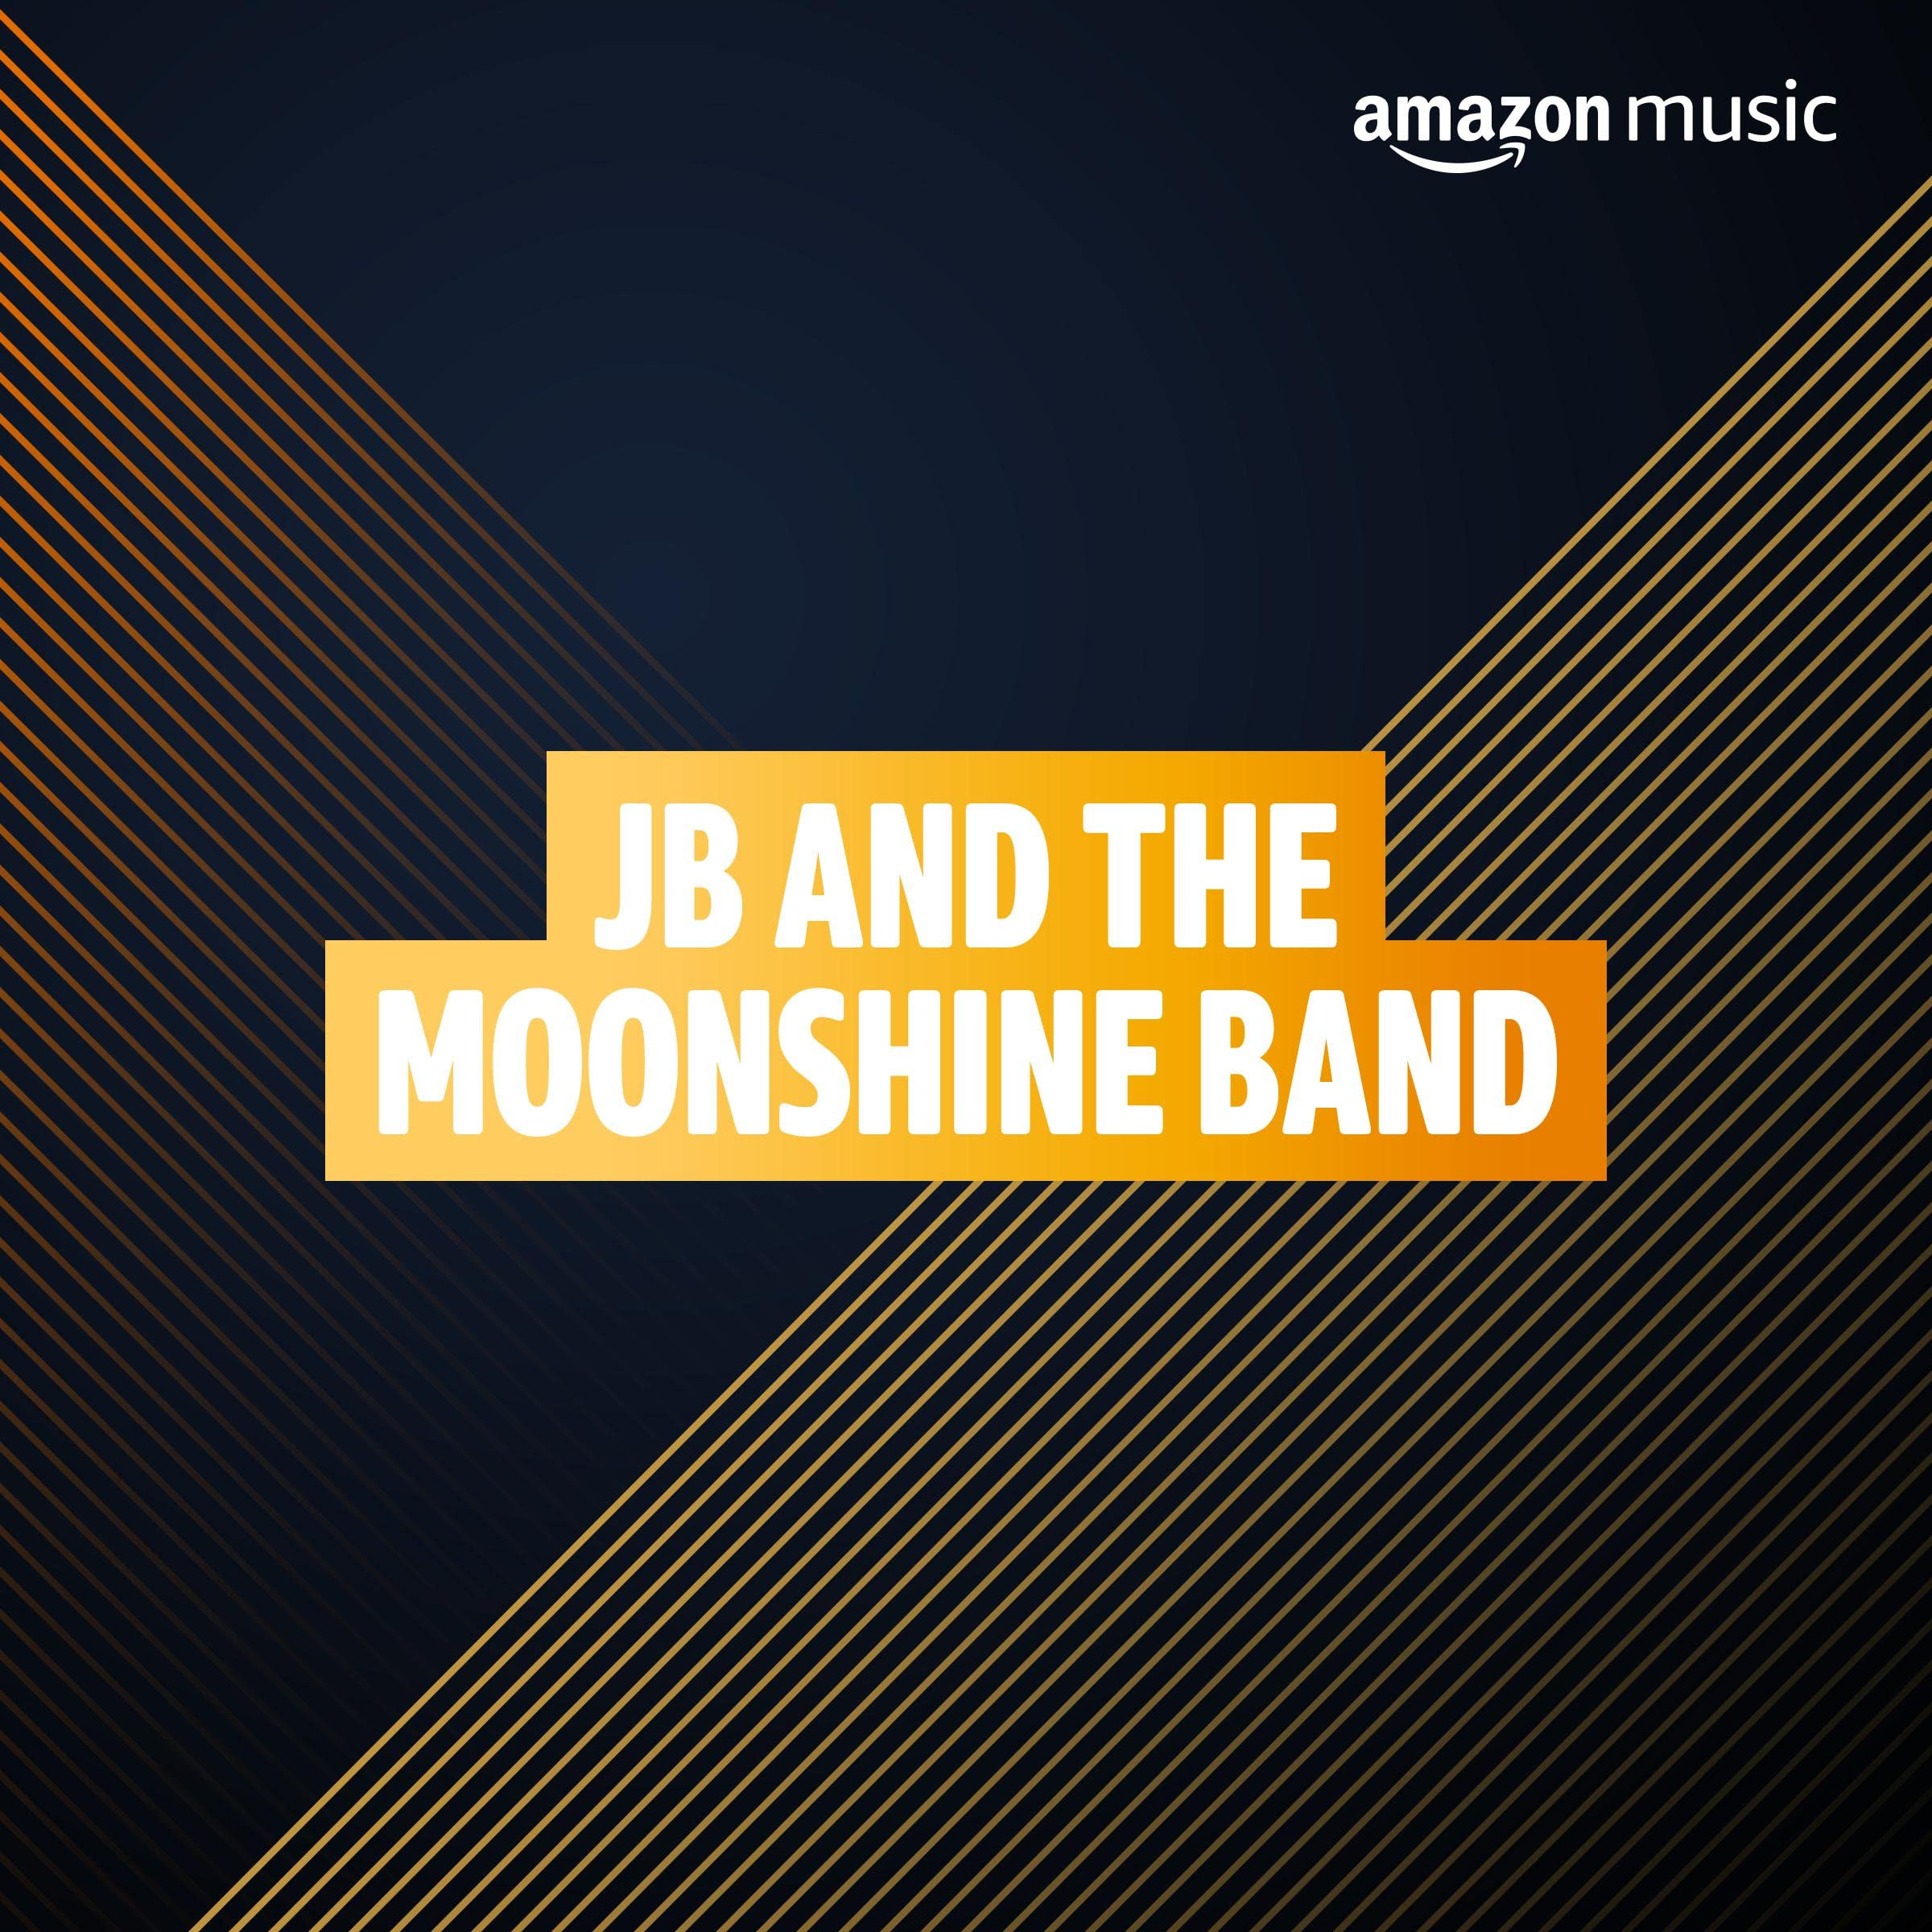 JB and the Moonshine Band